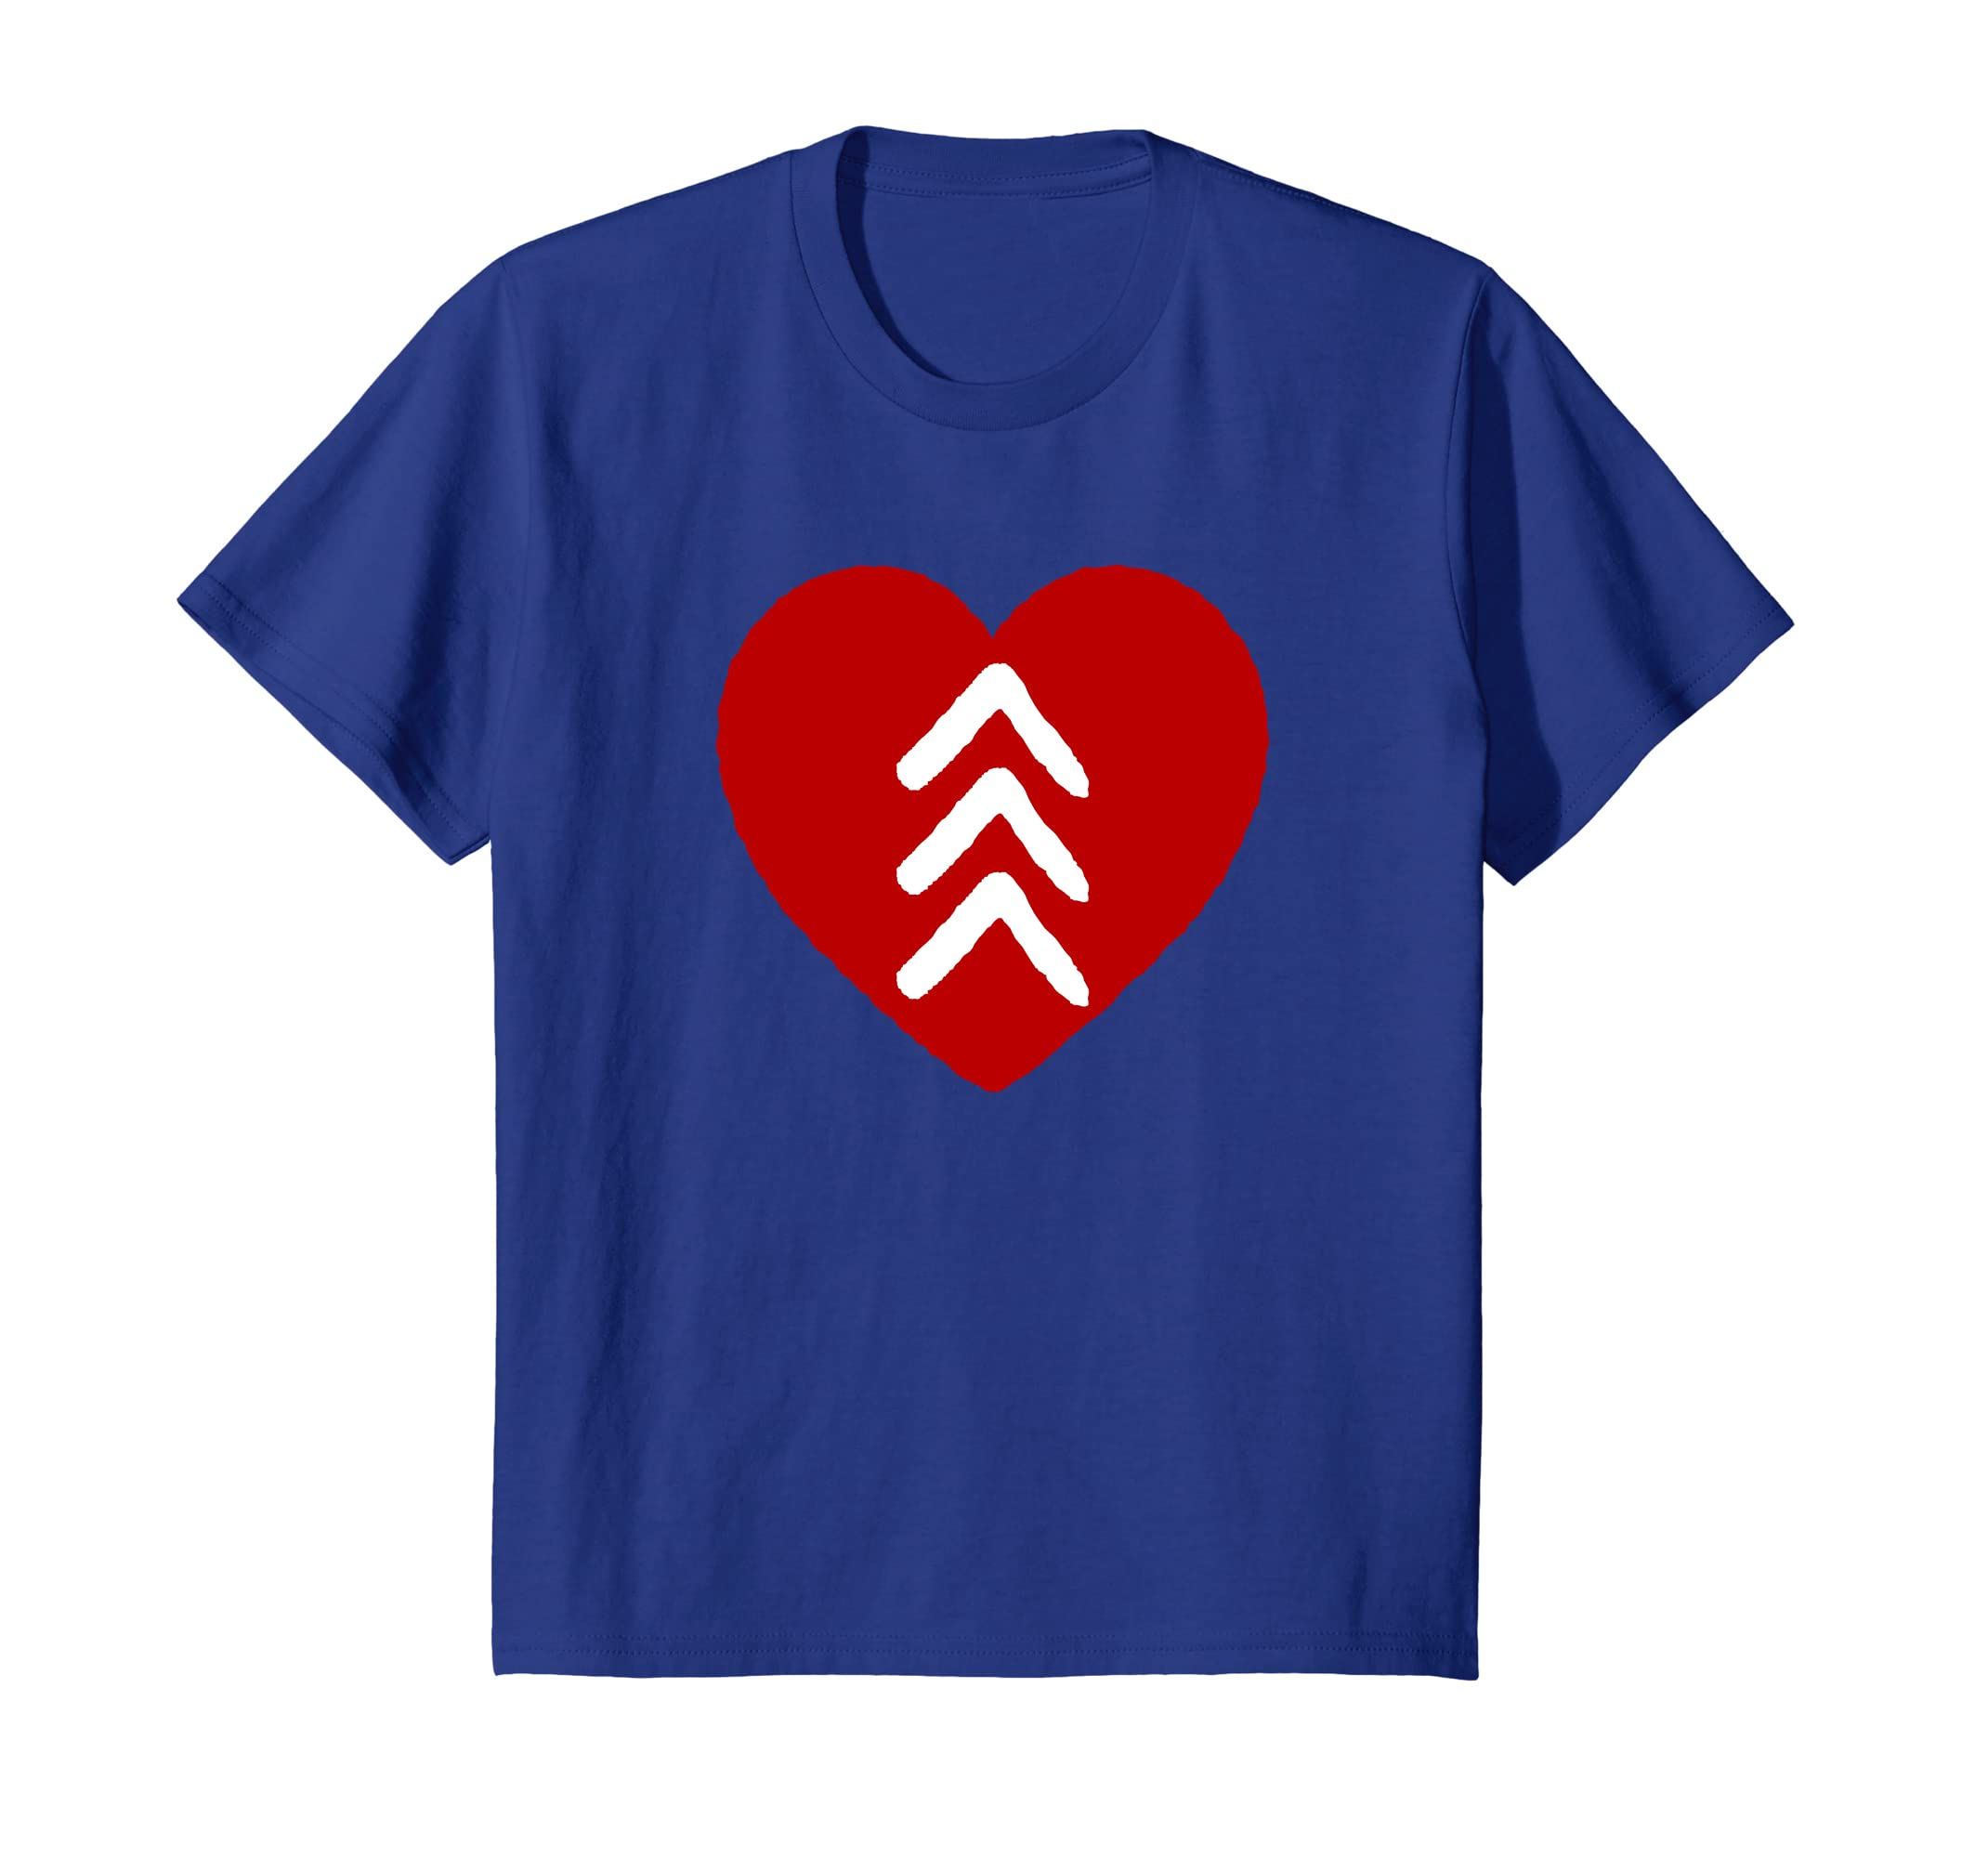 fba7d2d017f0f Amazon.com: Love World Down Syndrome Awareness Day Love 3 Arrows Shirt:  Clothing